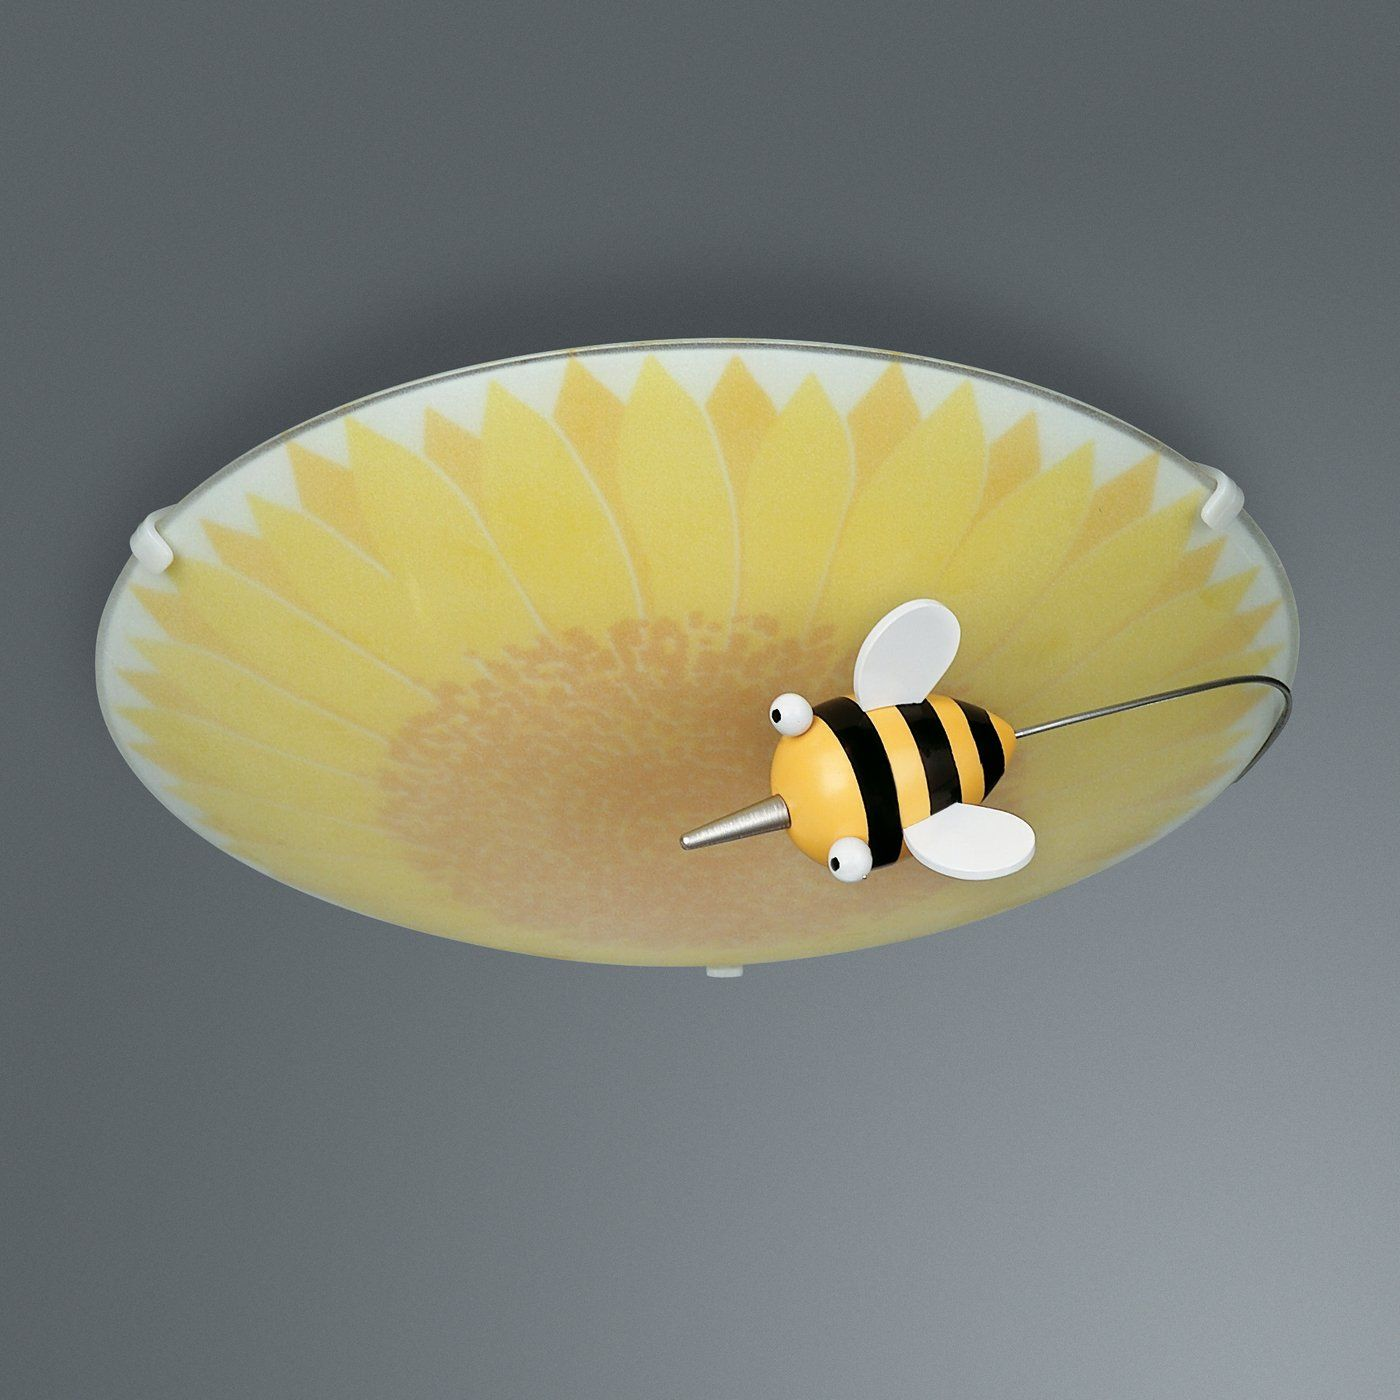 Philips 301115548 kidsplace floral bumble bee kids ceiling light philips 301115548 kidsplace floral bumble bee kids ceiling light this is so cute i don arubaitofo Gallery